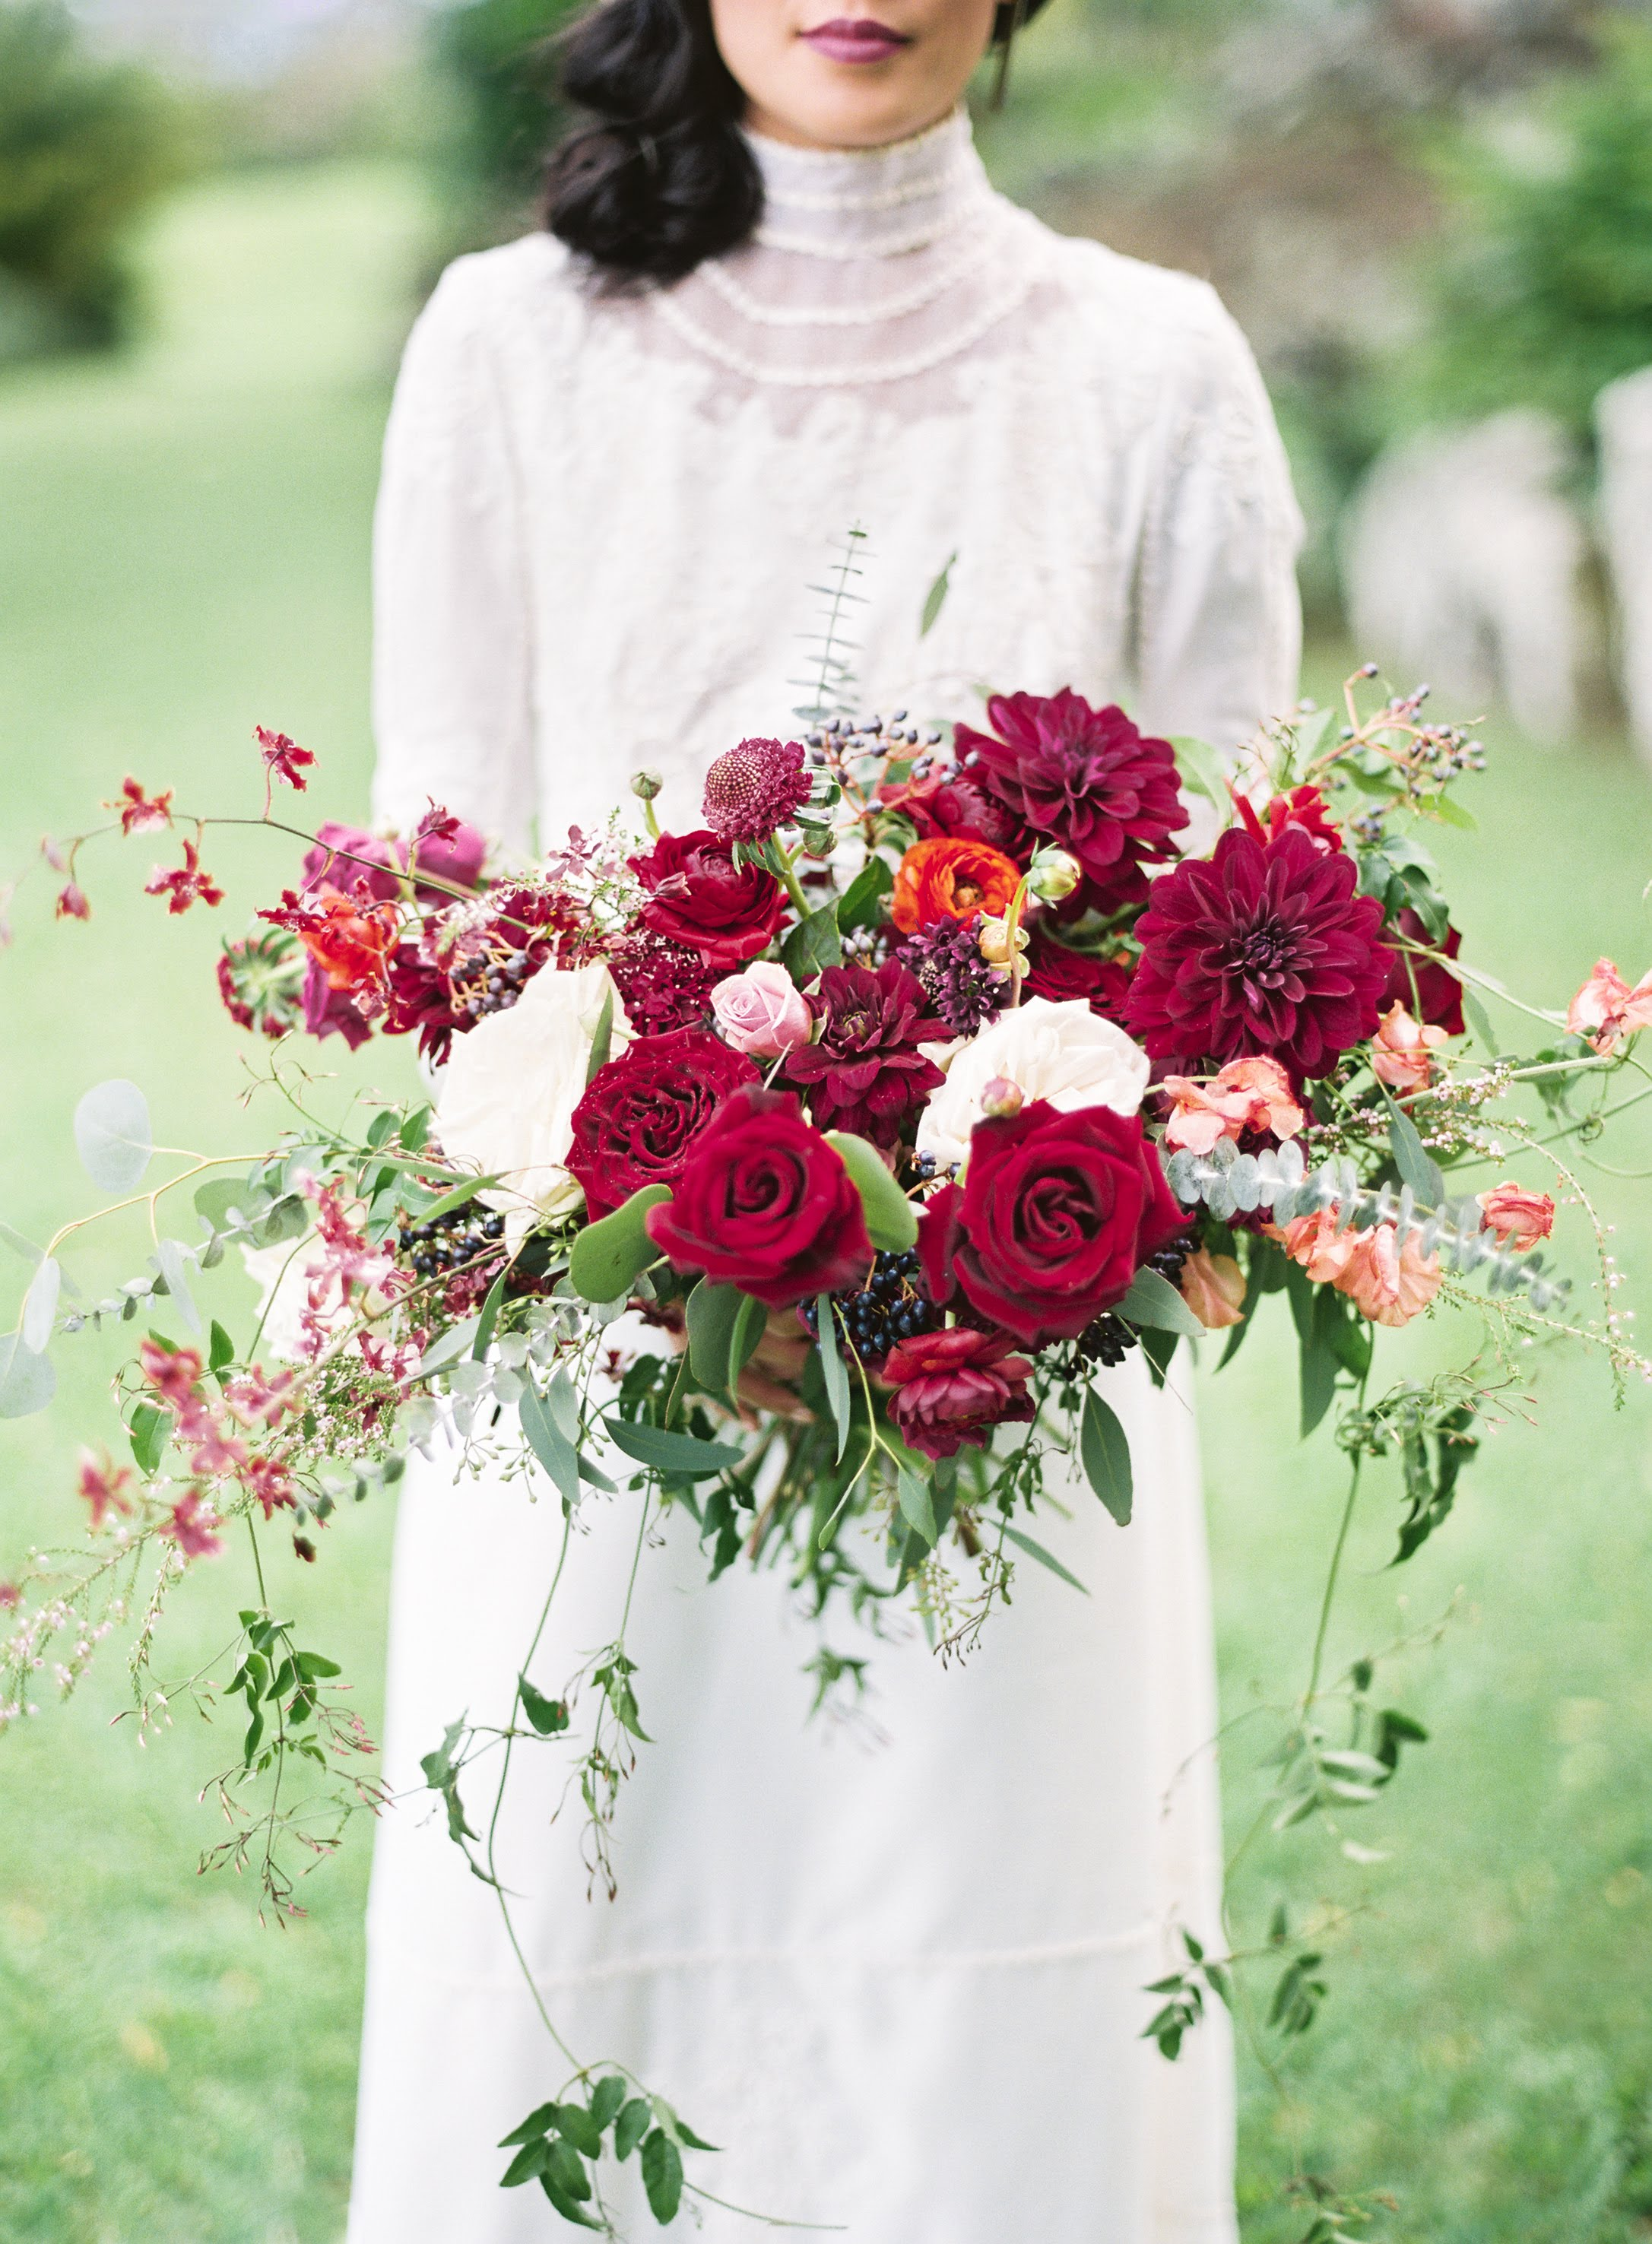 Up close of bride holding floral arrangement